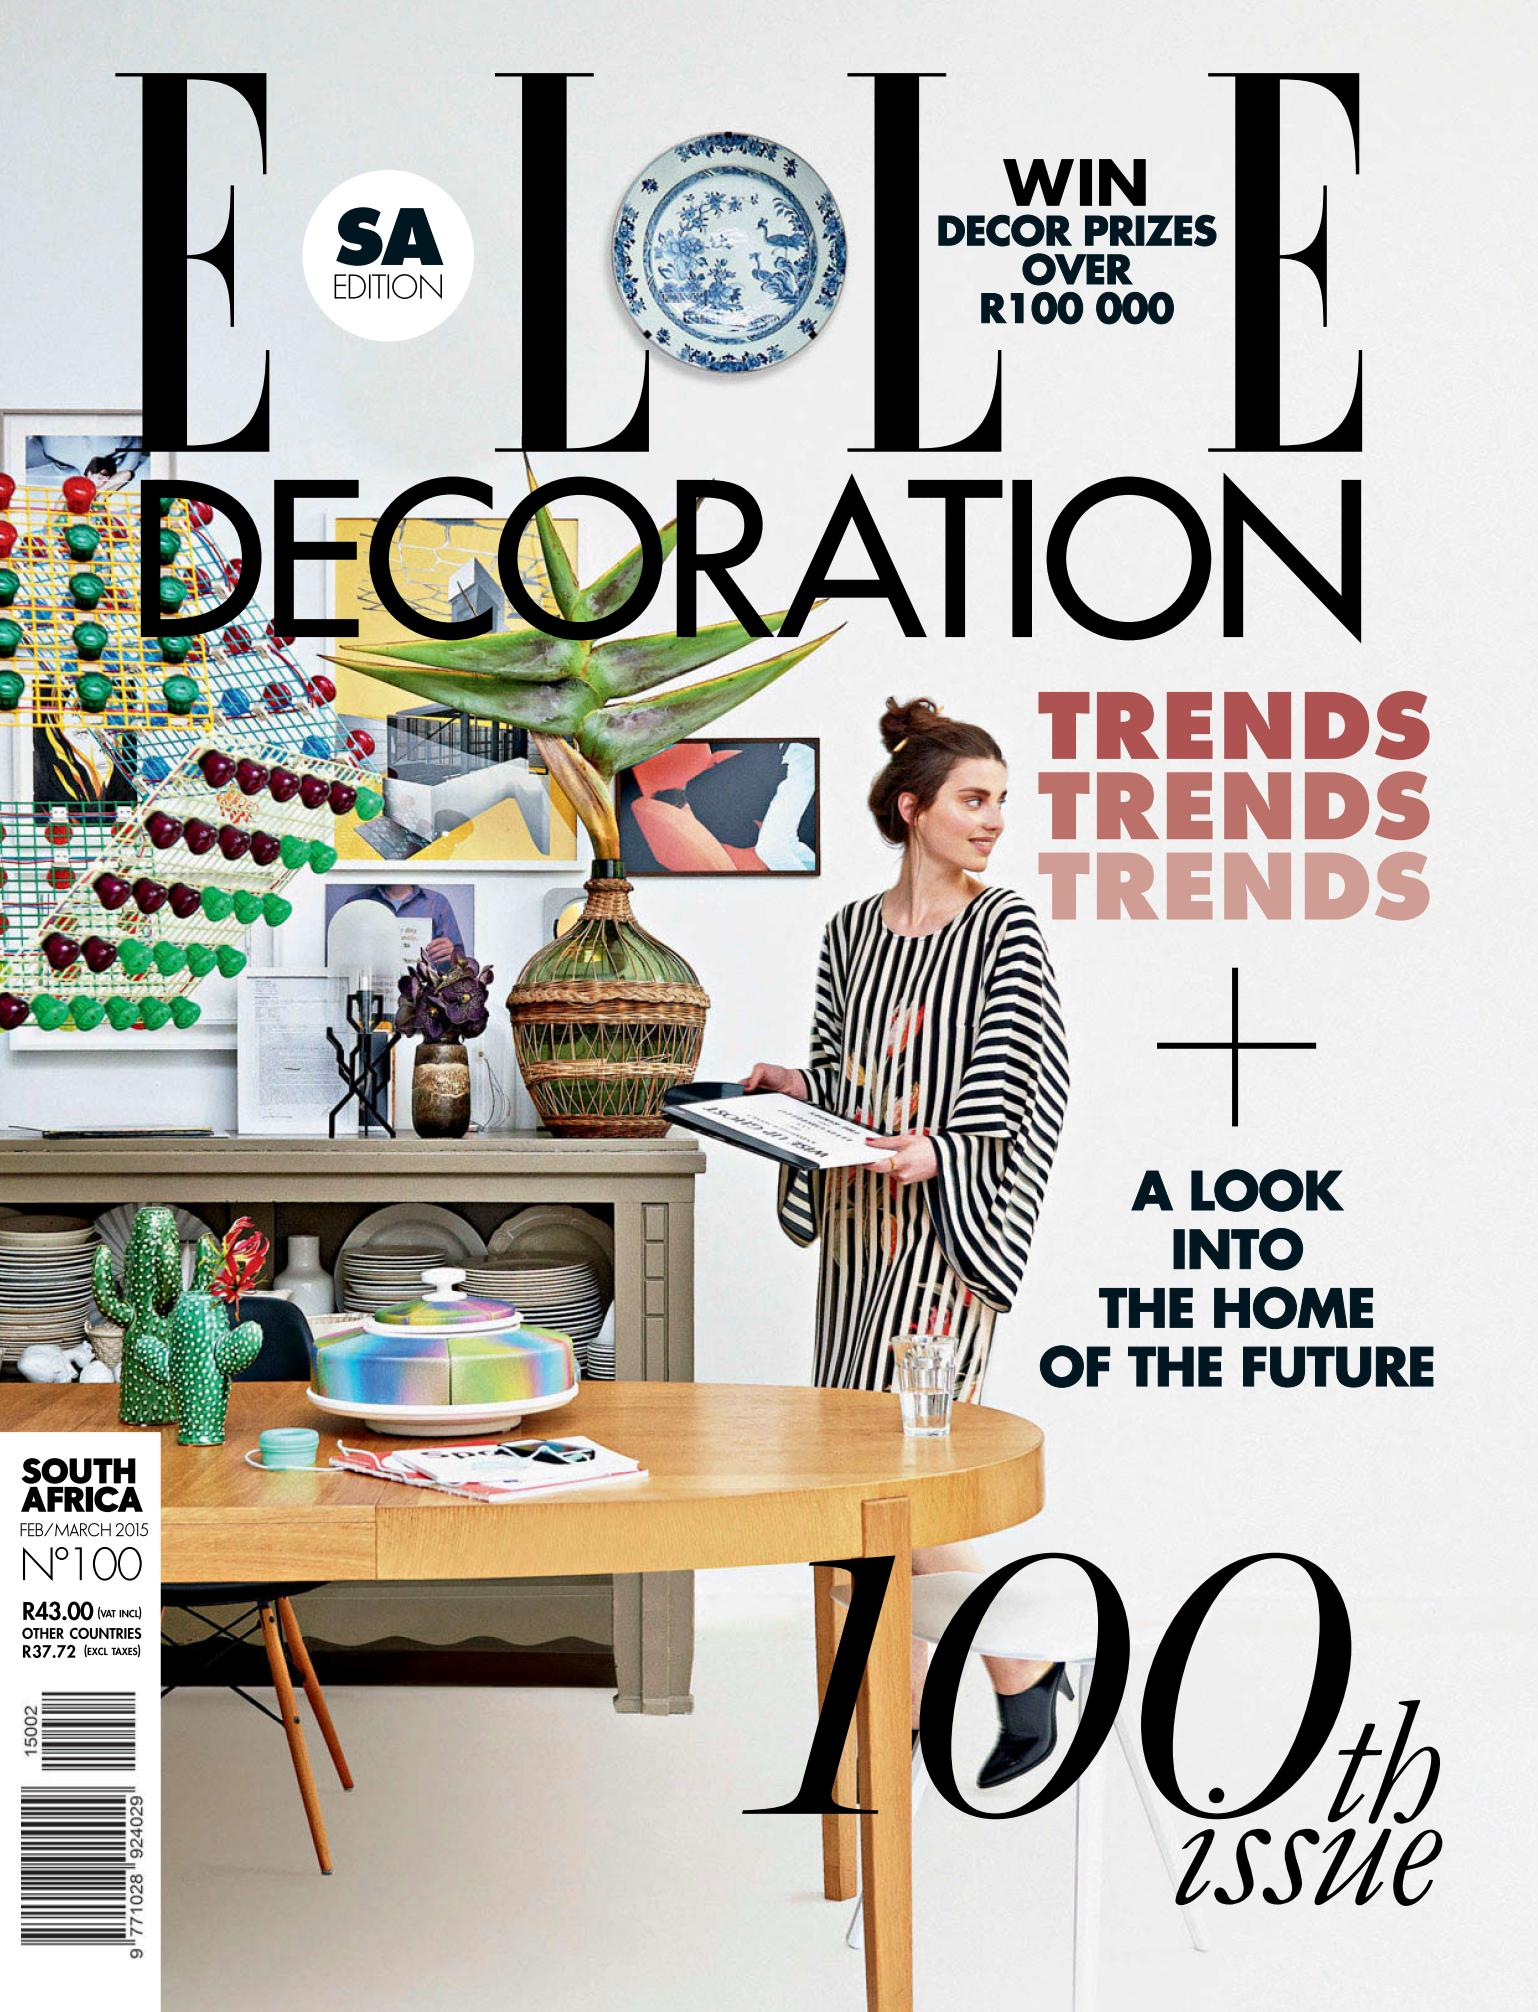 Elle Decoration South Africa - February-March 2015 free download